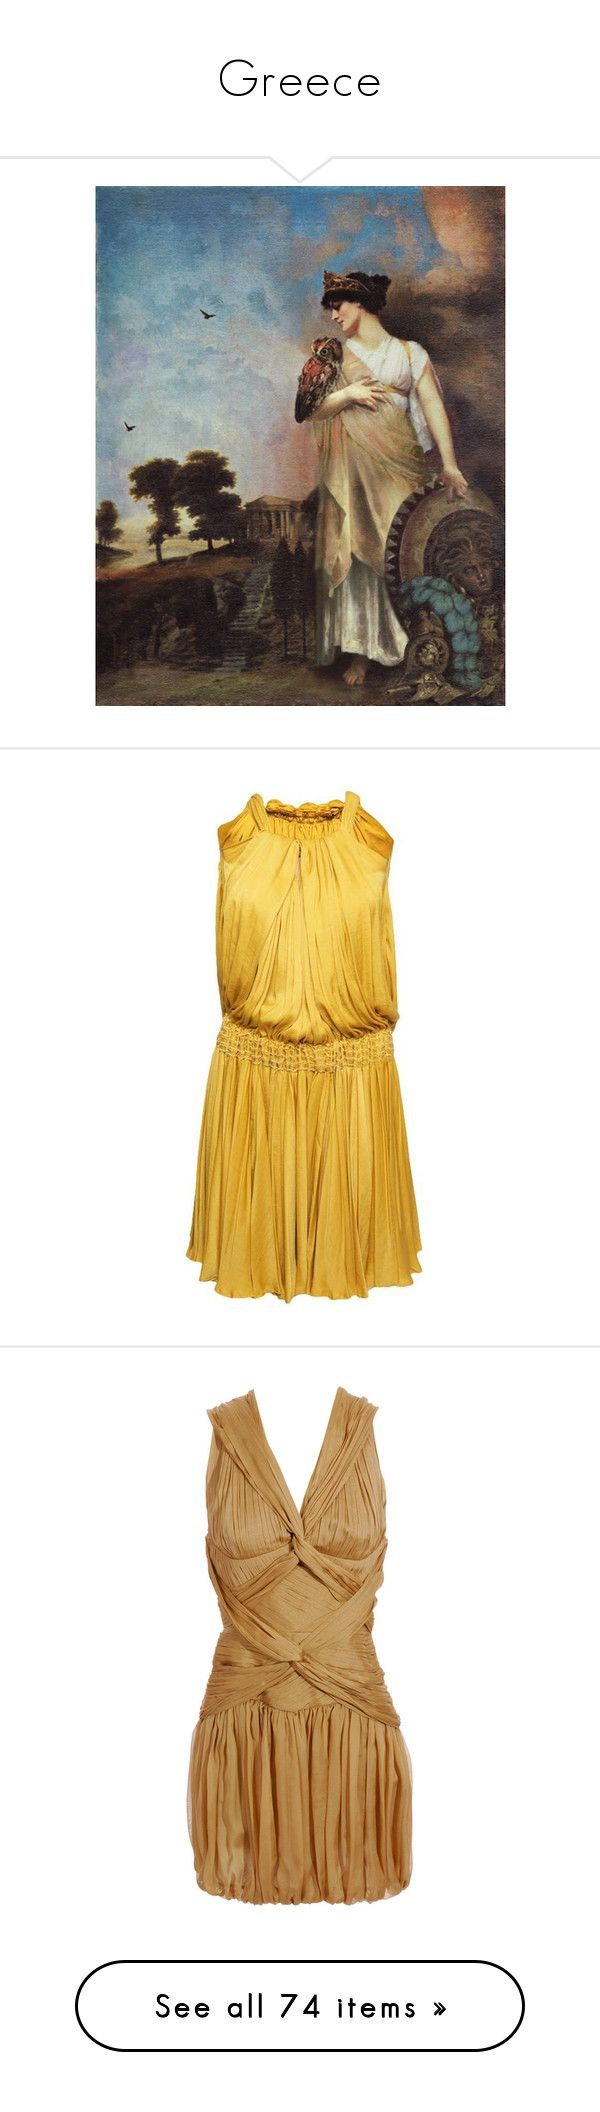 """""""Greece"""" by r-maggie ❤ liked on Polyvore featuring home, home decor, greek home decor, dresses, vestidos, yellow, short dresses, women, full skirts and yellow mini dress"""